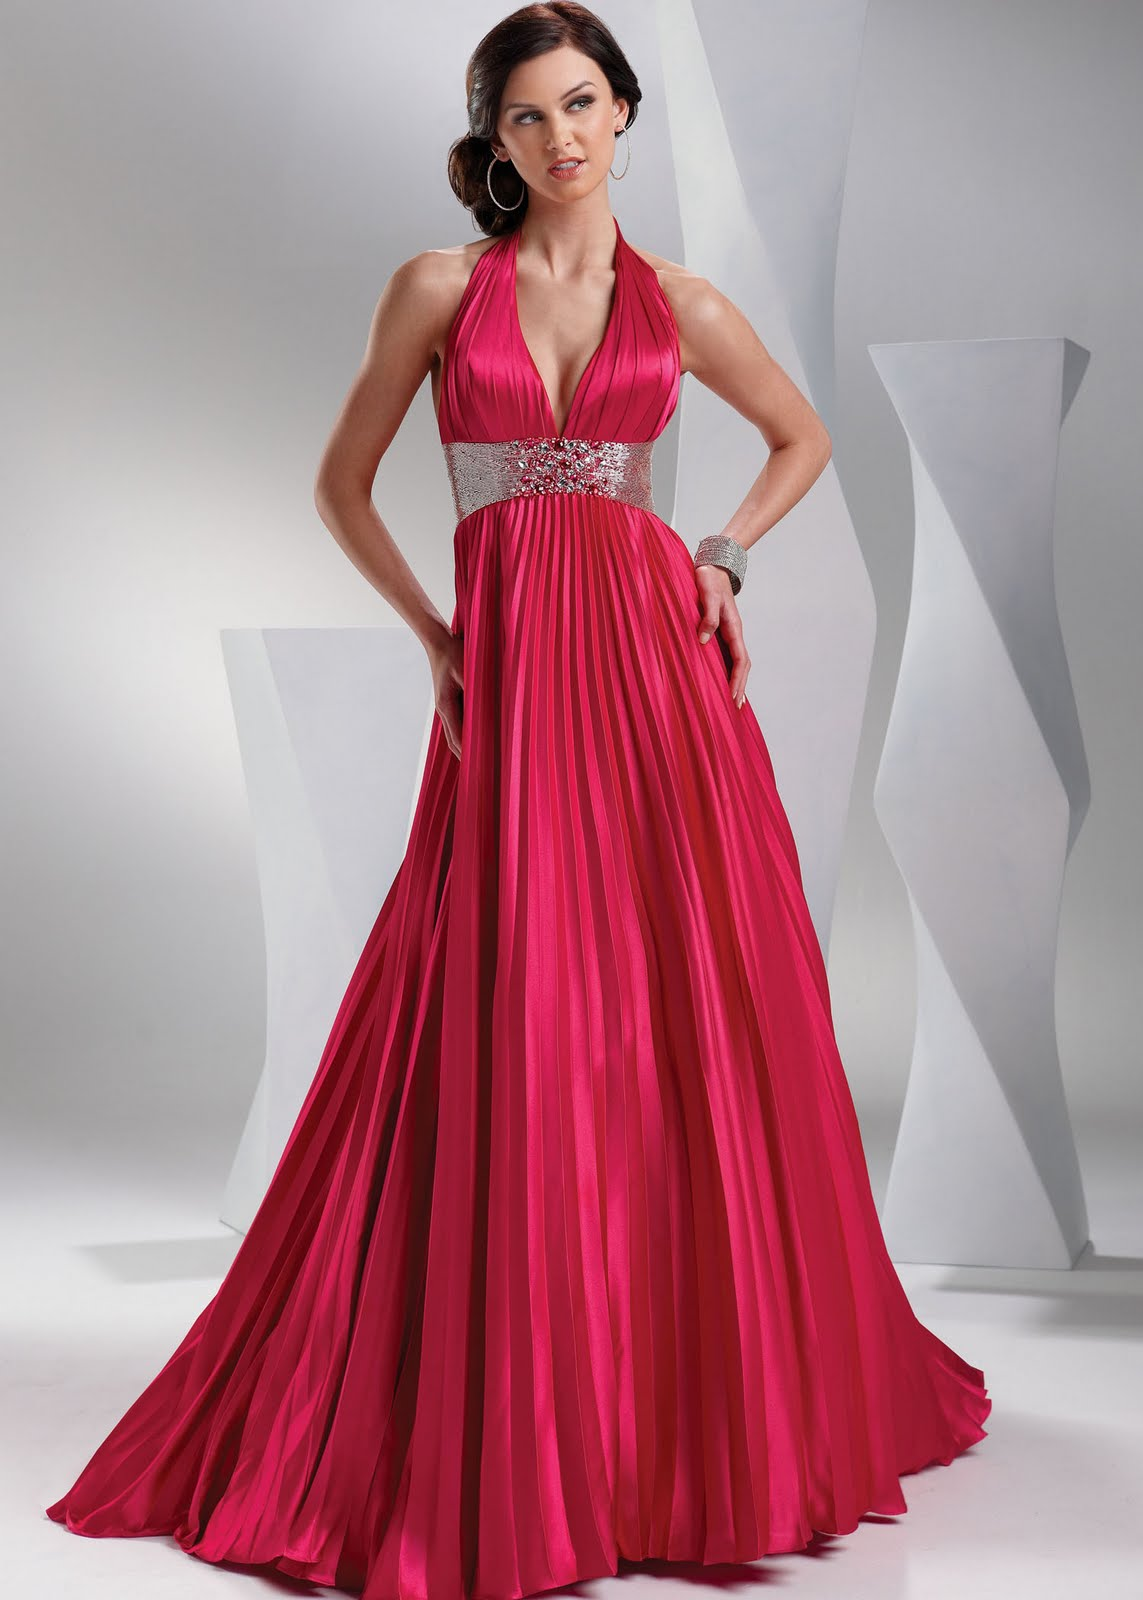 Gowns Images - Reverse Search